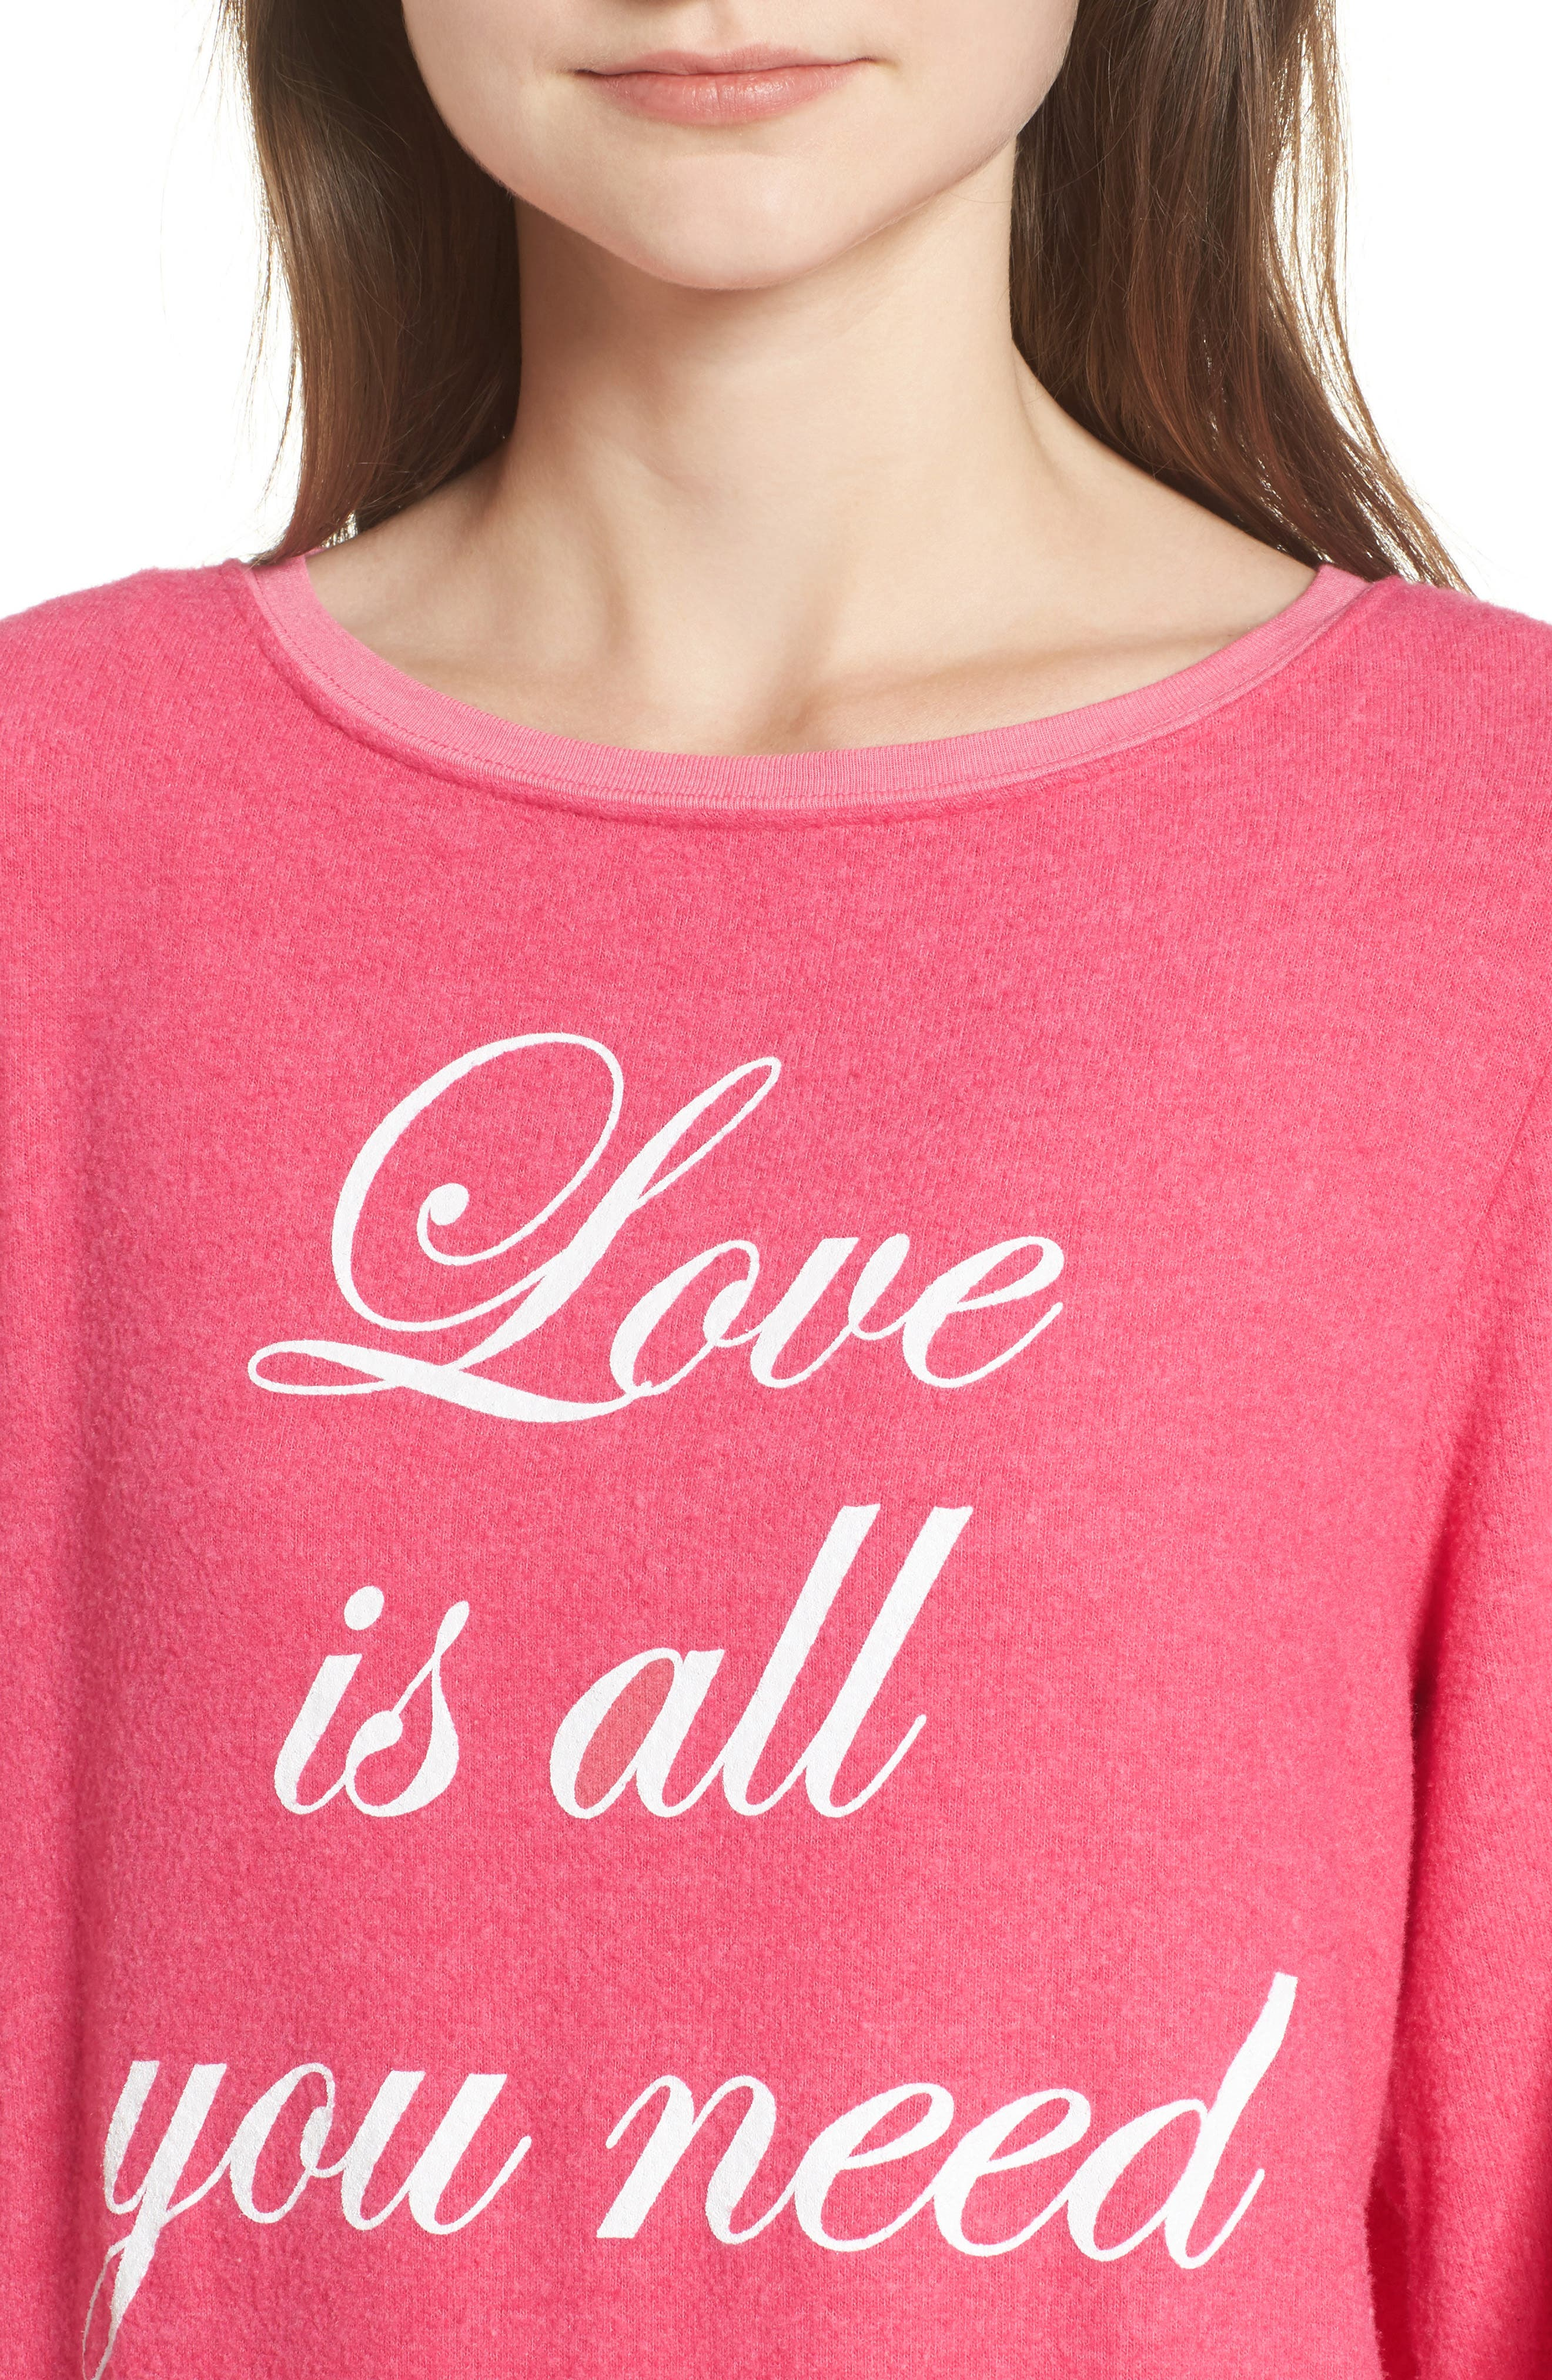 Love Is All Sweatshirt,                             Alternate thumbnail 4, color,                             Neon Pink